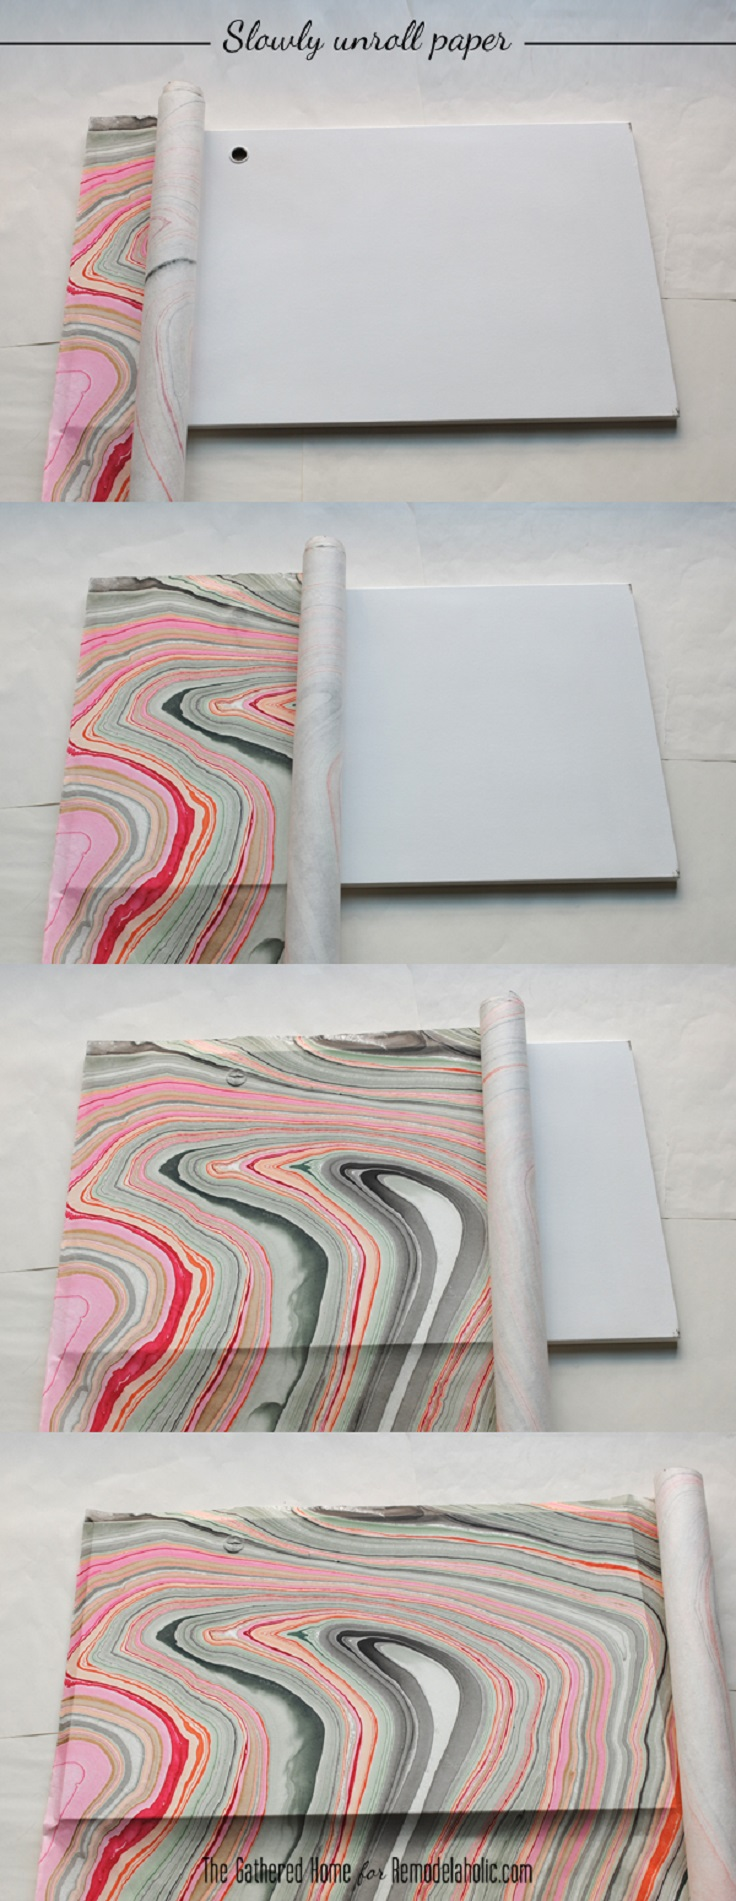 Marbled-Decorative-Paper